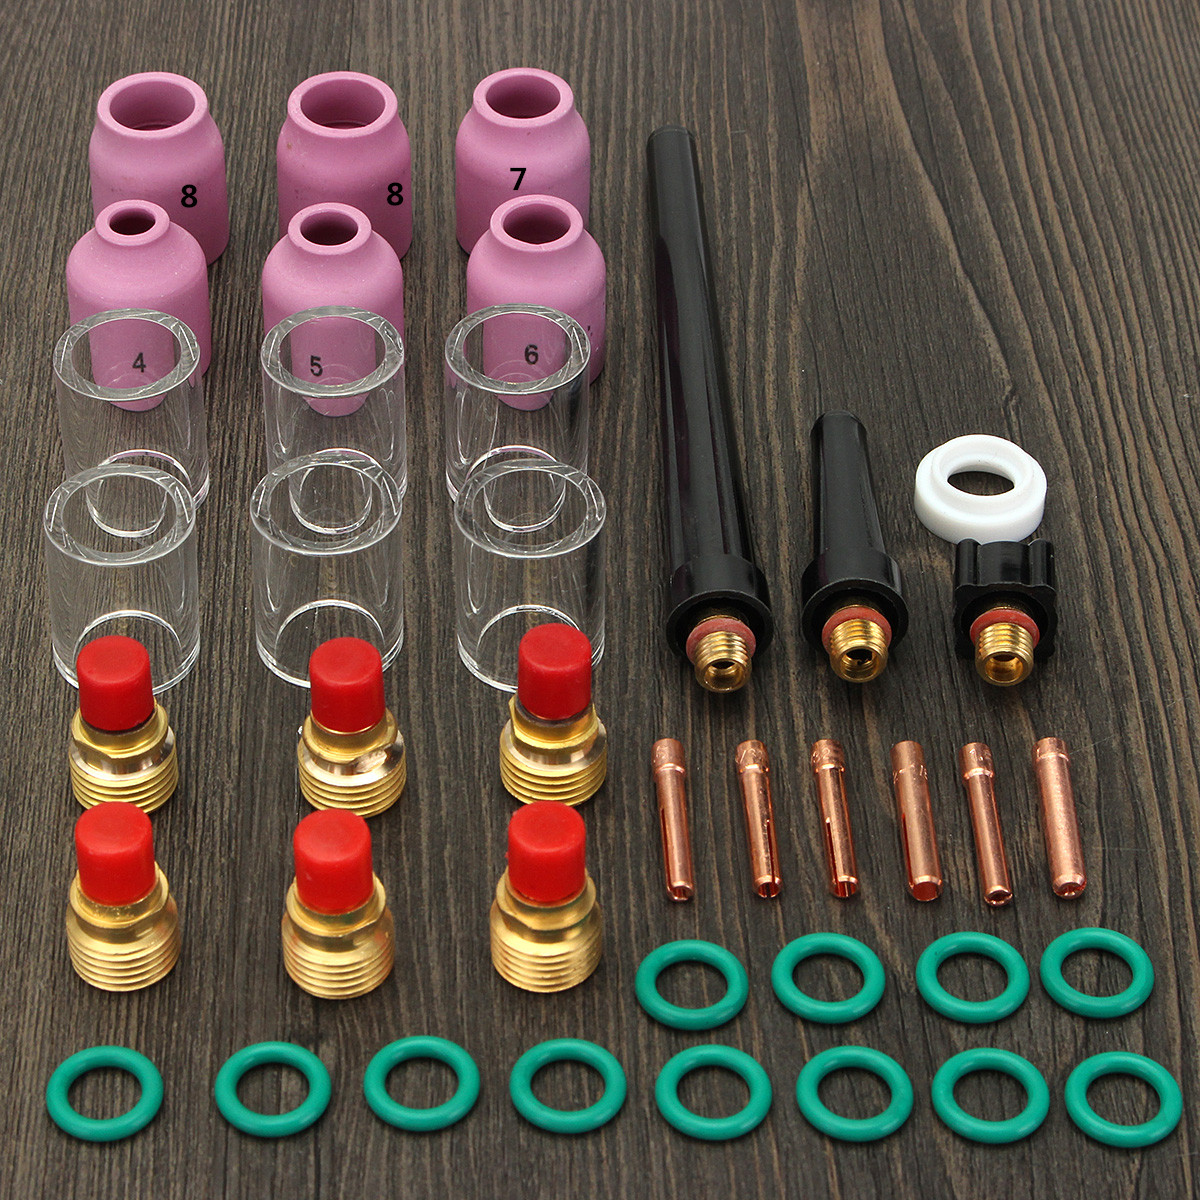 581302 Alumina Nozzle Arc Welding Gas Lens Metalwork For TIG Torches WP-9 WP-20